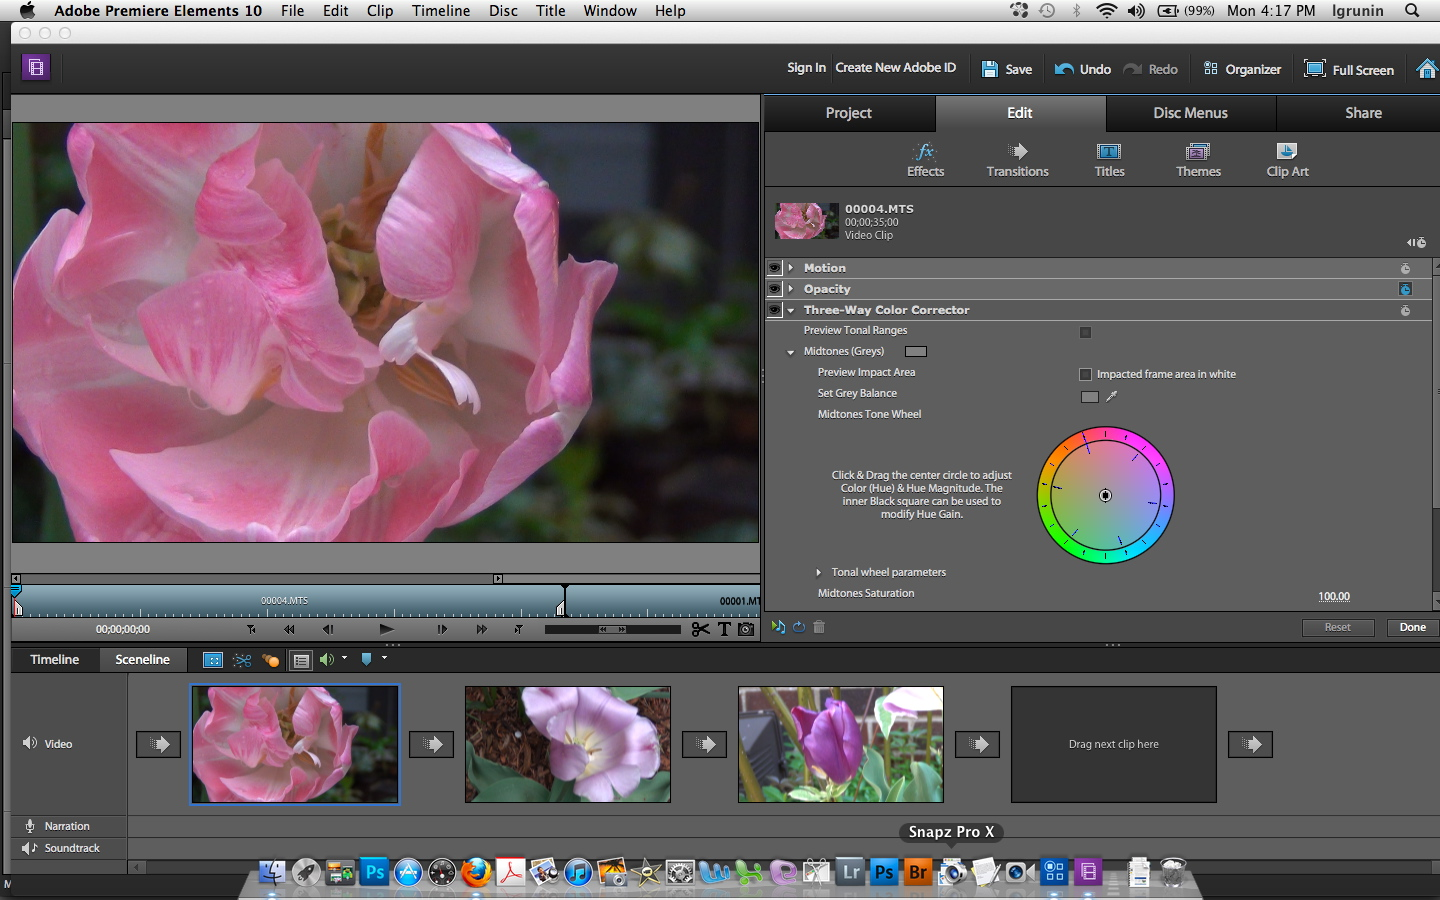 Premiere Elements' new Three-Way Color Corrector lets you adjust highlights, midtones, and shadows independently.